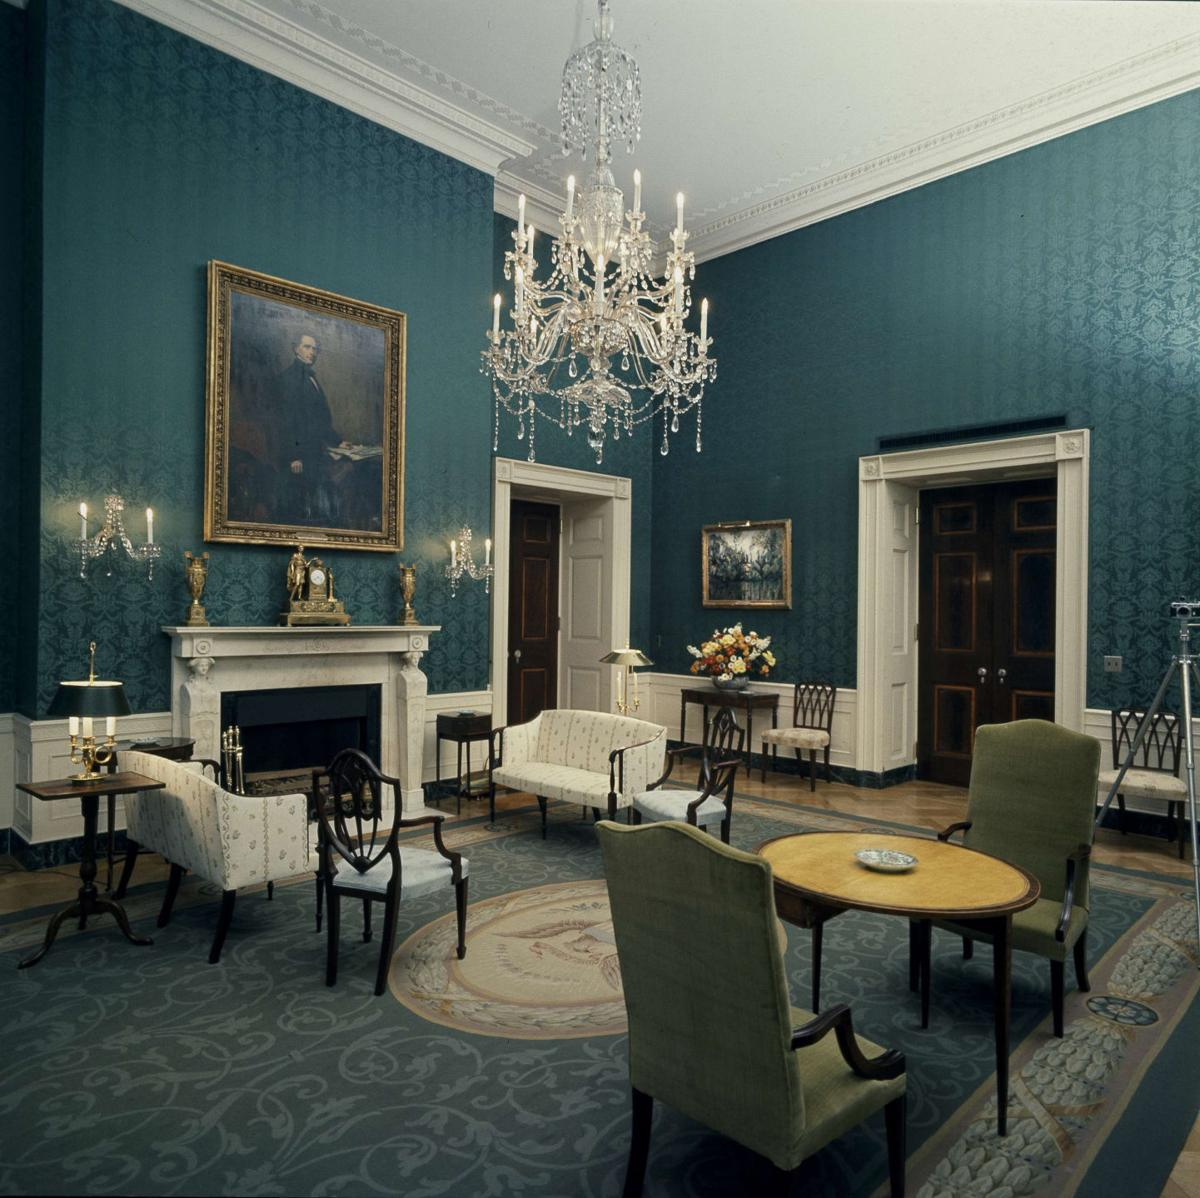 Photos: Inside The White House's Color-coded Rooms